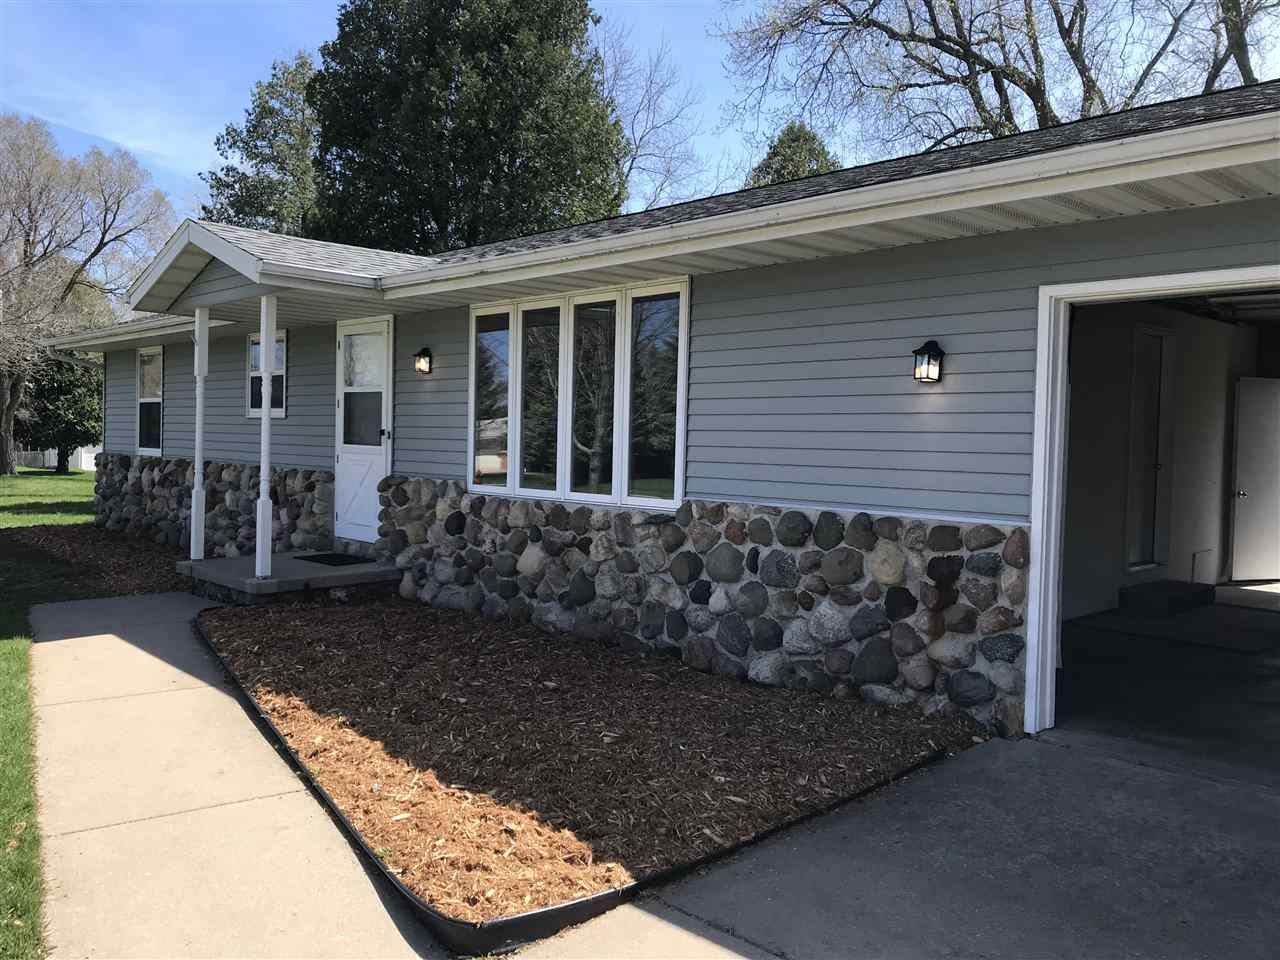 2701 GLENDALE Avenue, Green Bay, WI 54313 - MLS#: 50239075